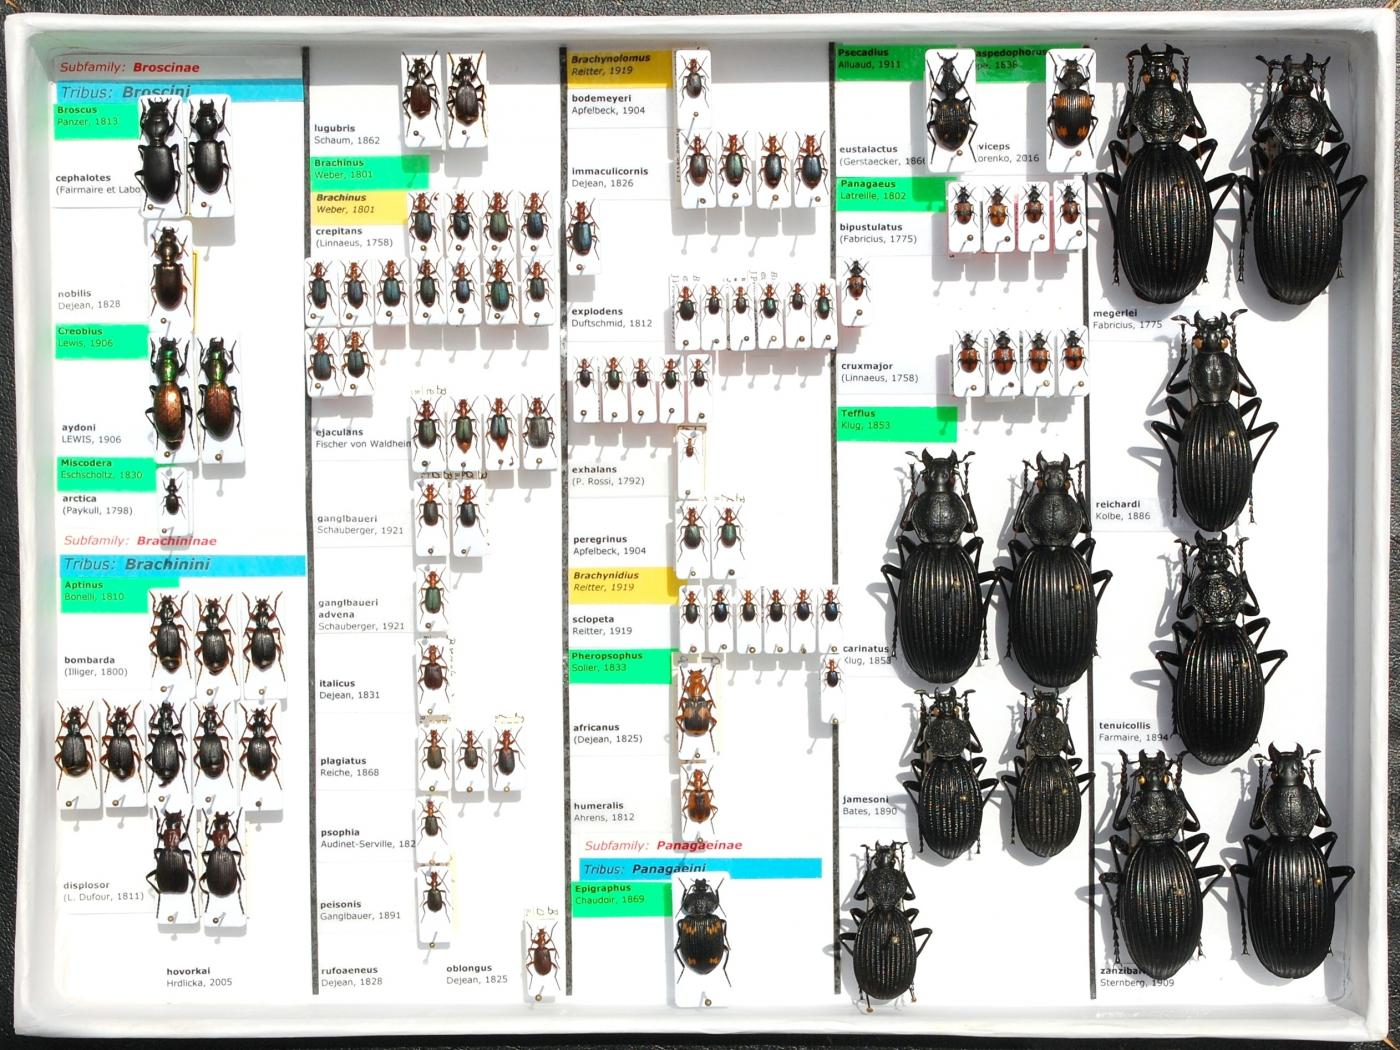 Carabidae_55.JPG - Attached Image (Click thumbnail to expand)